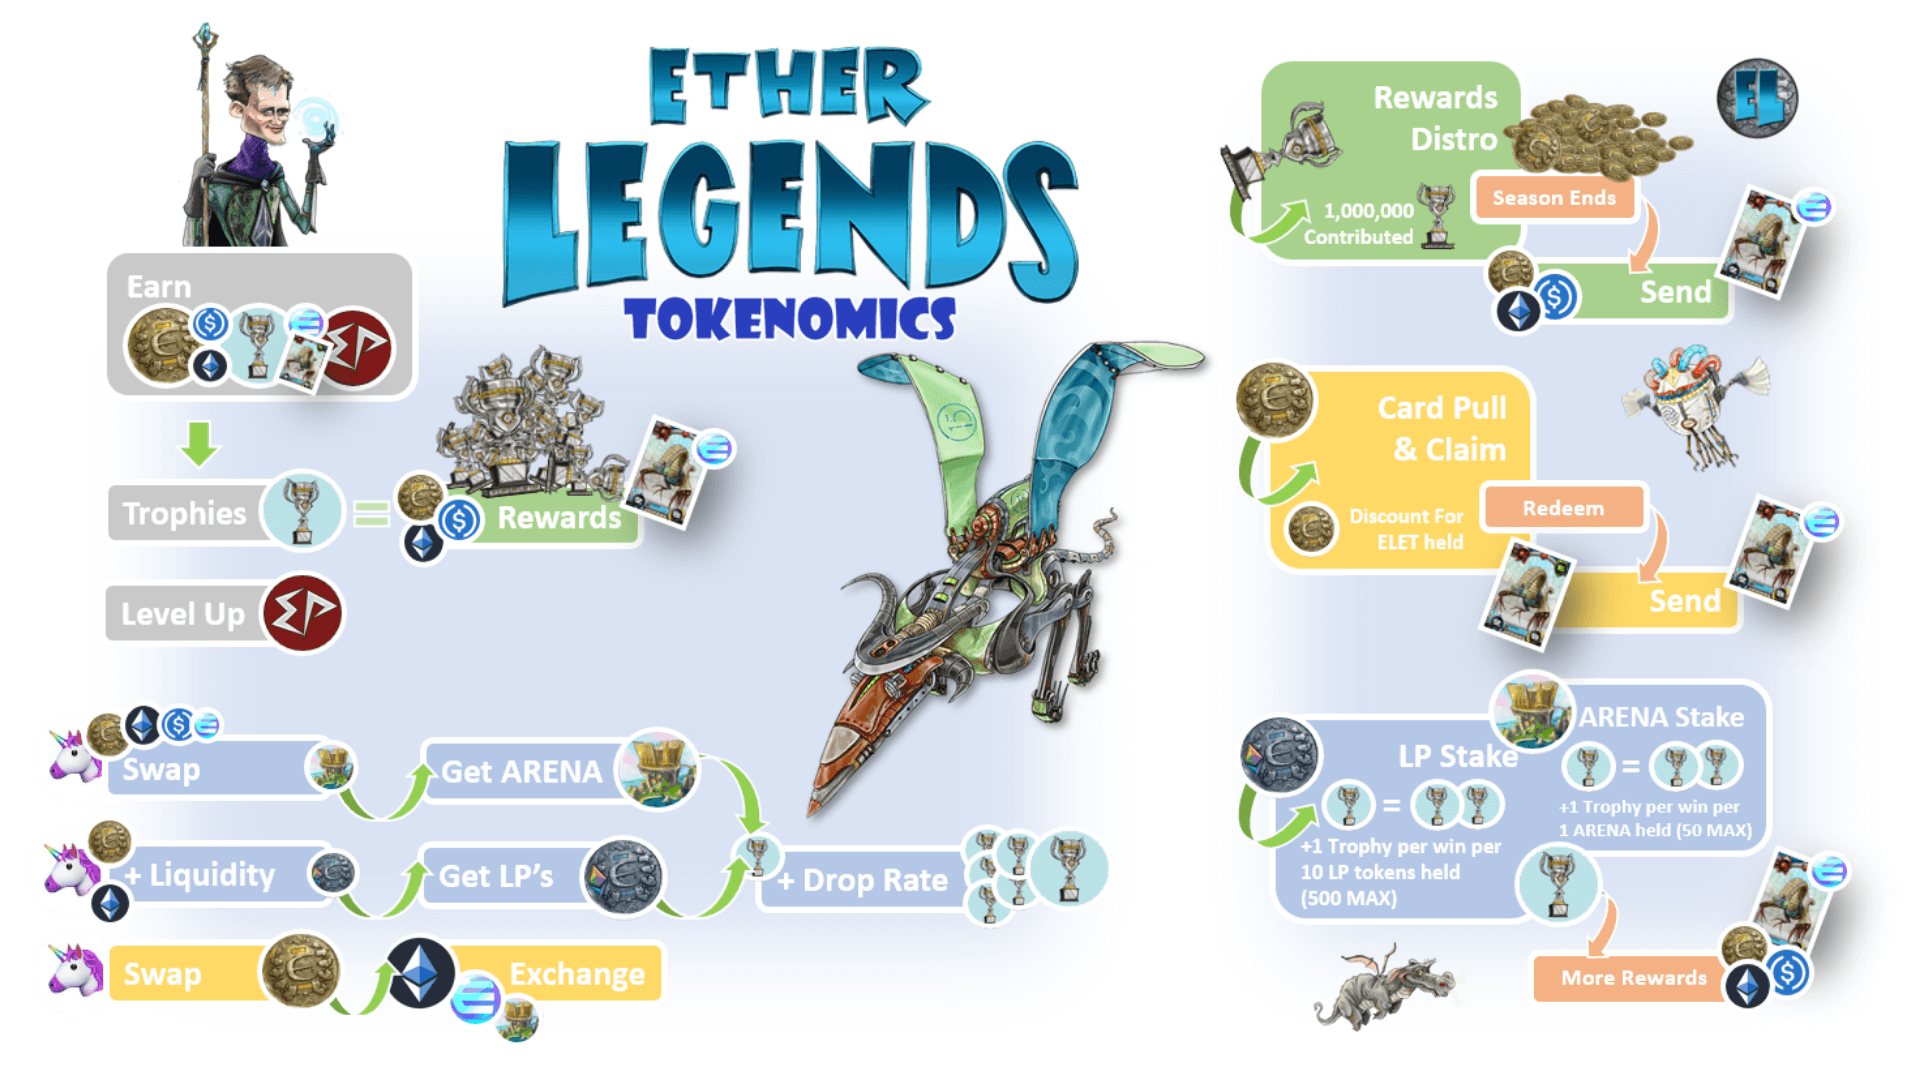 Play to Earn in the Ether Legends TCG